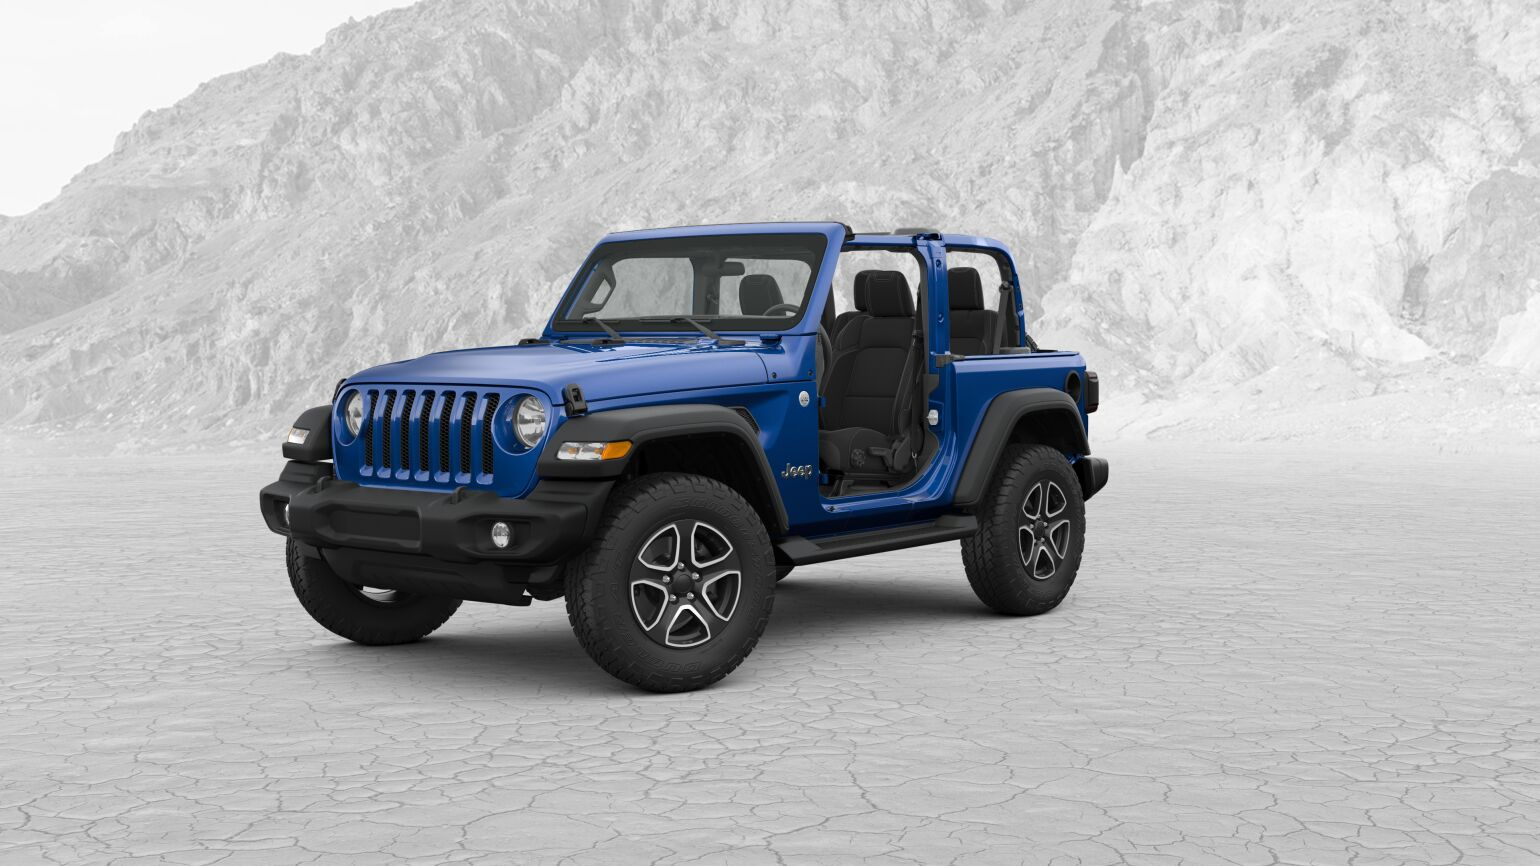 jl wrangler build and price configurator now available on page 6 2018 jeep. Black Bedroom Furniture Sets. Home Design Ideas